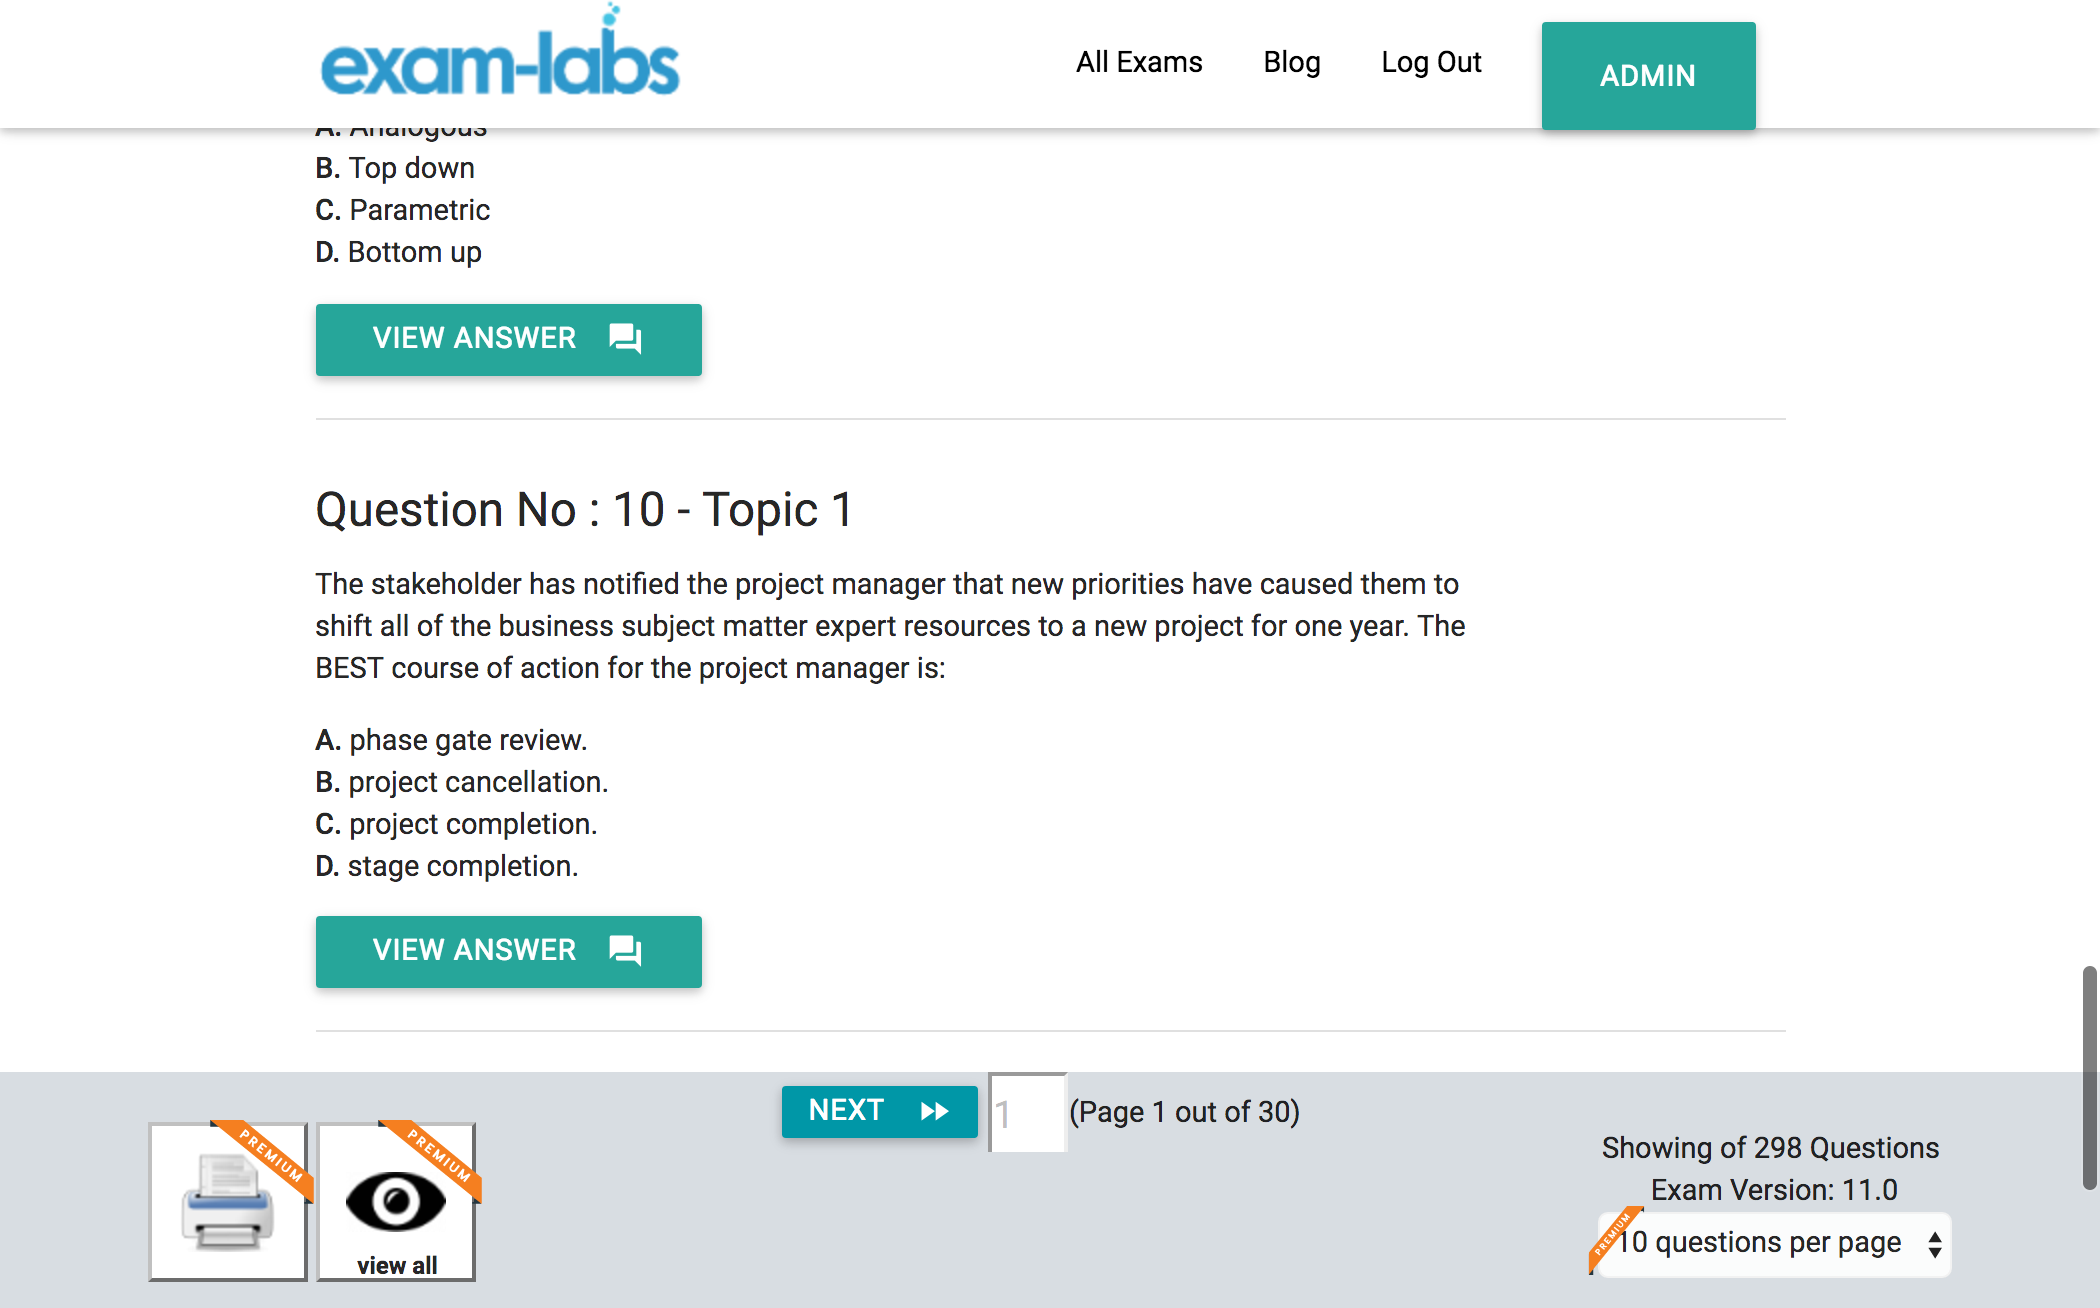 Pk0 003 comptia practice exam questions 100 free exam labs 1betcityfo Choice Image